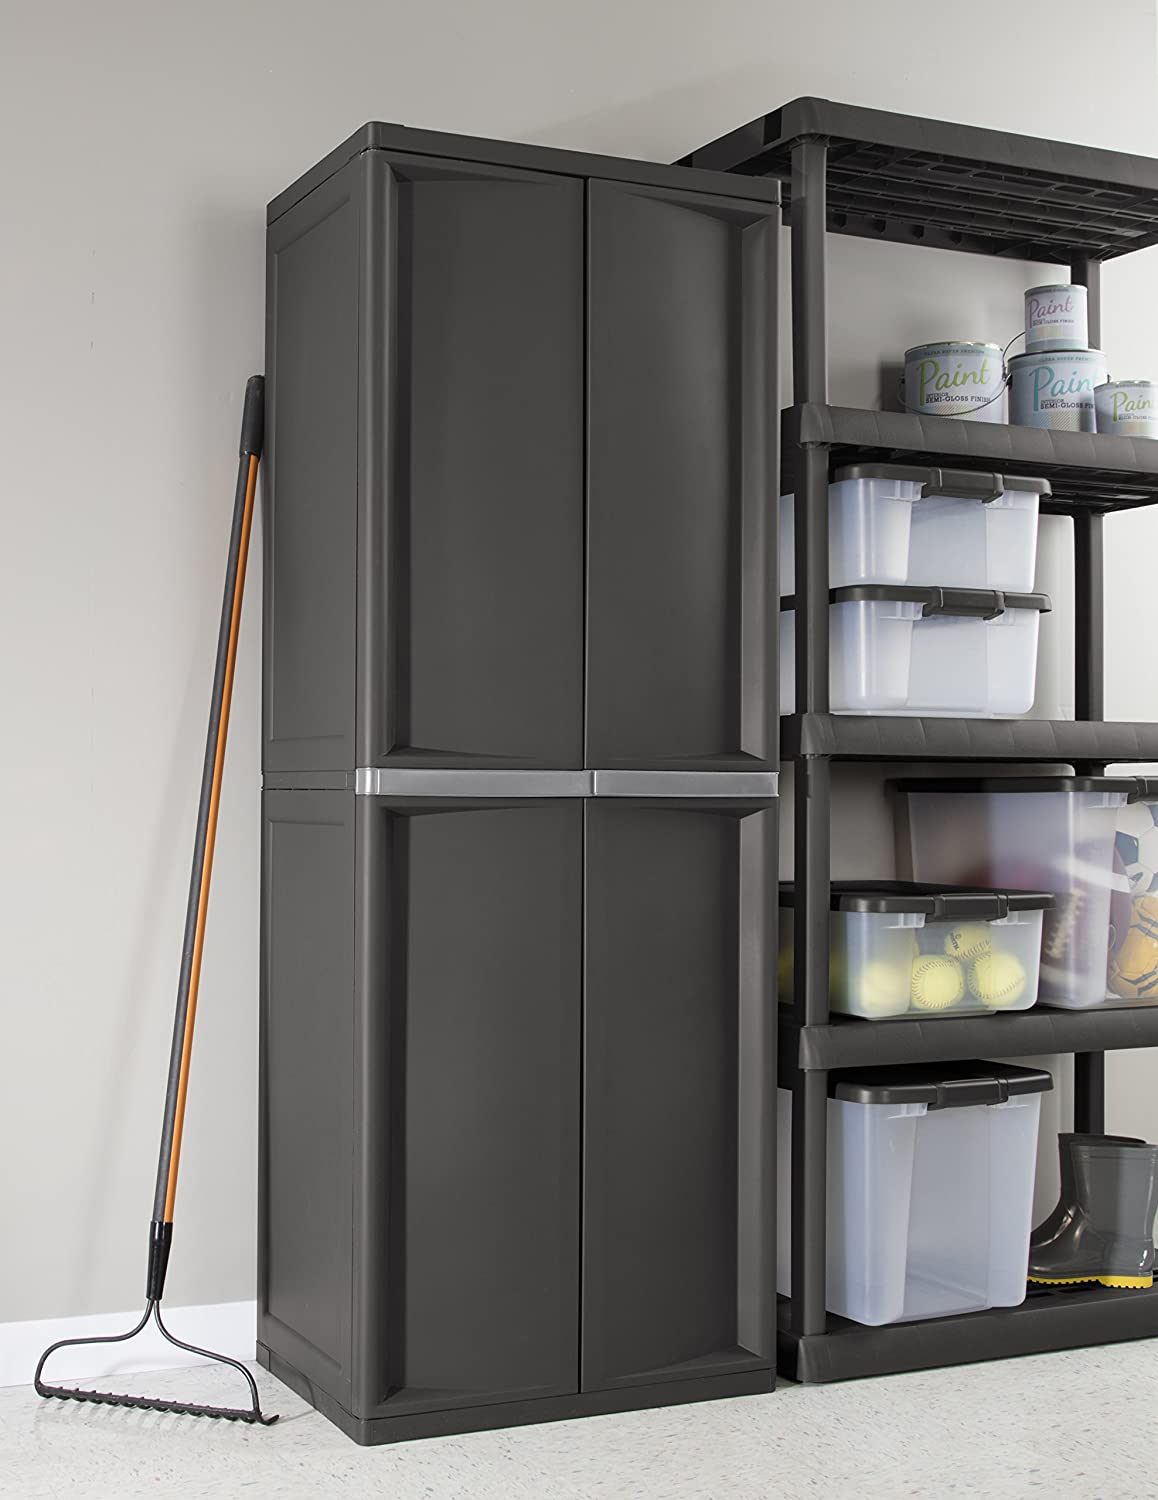 w garage organization standing with storage systems platinum in purpose b sterilite cabinet putty utility the hdx handles plastic cabinets multi gray shelf n free